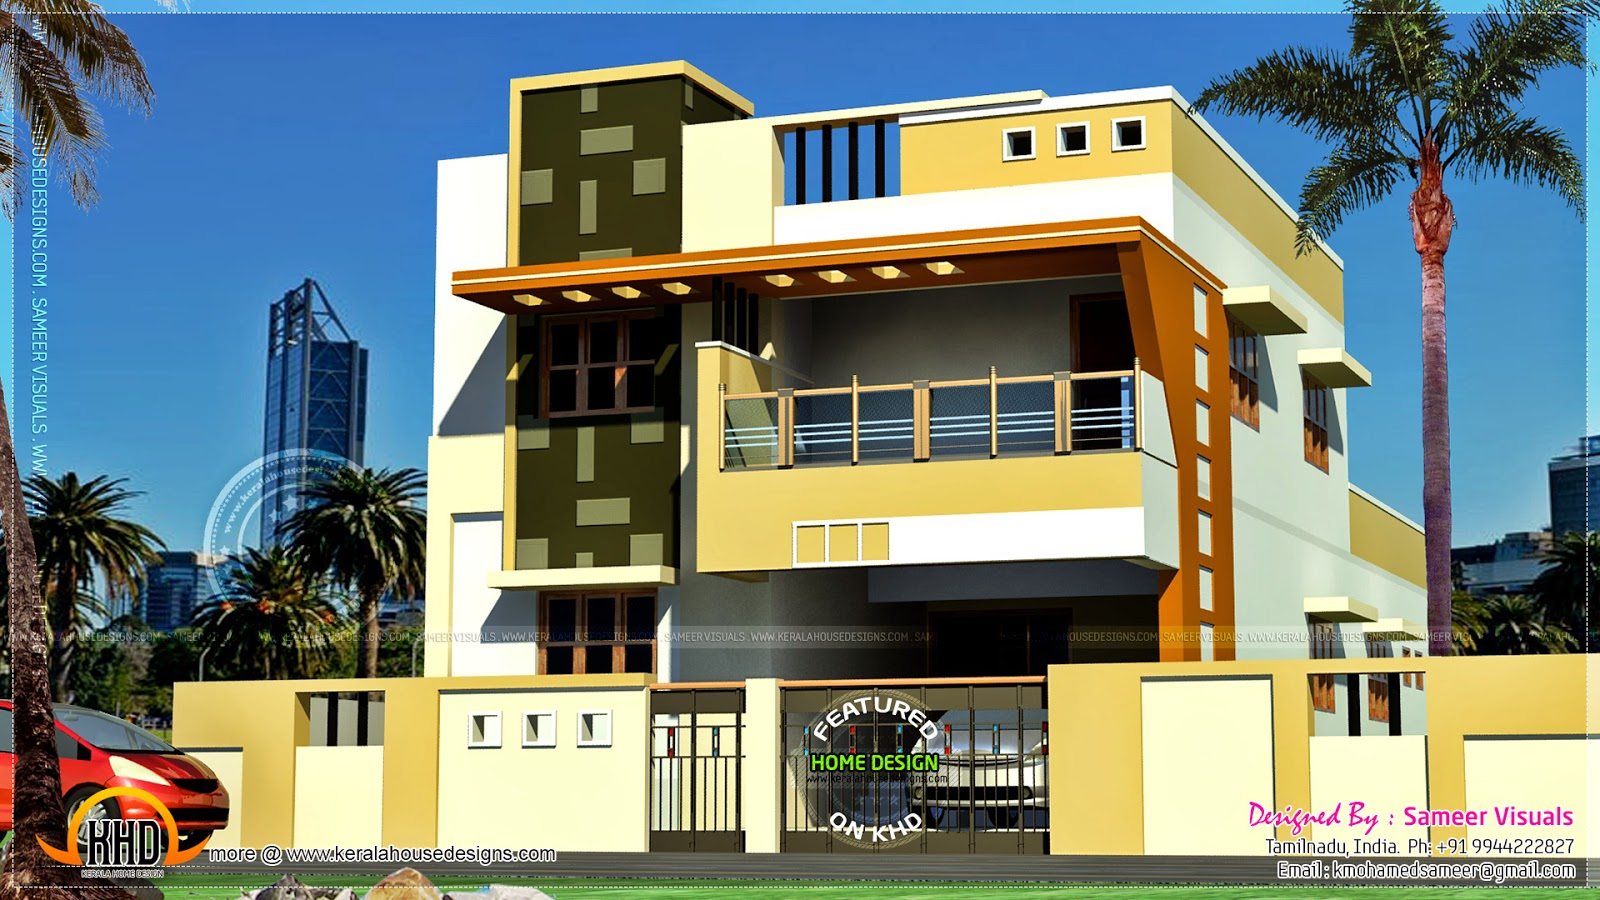 Modern south indian house design kerala home design and for Indian house designs for 800 sq ft